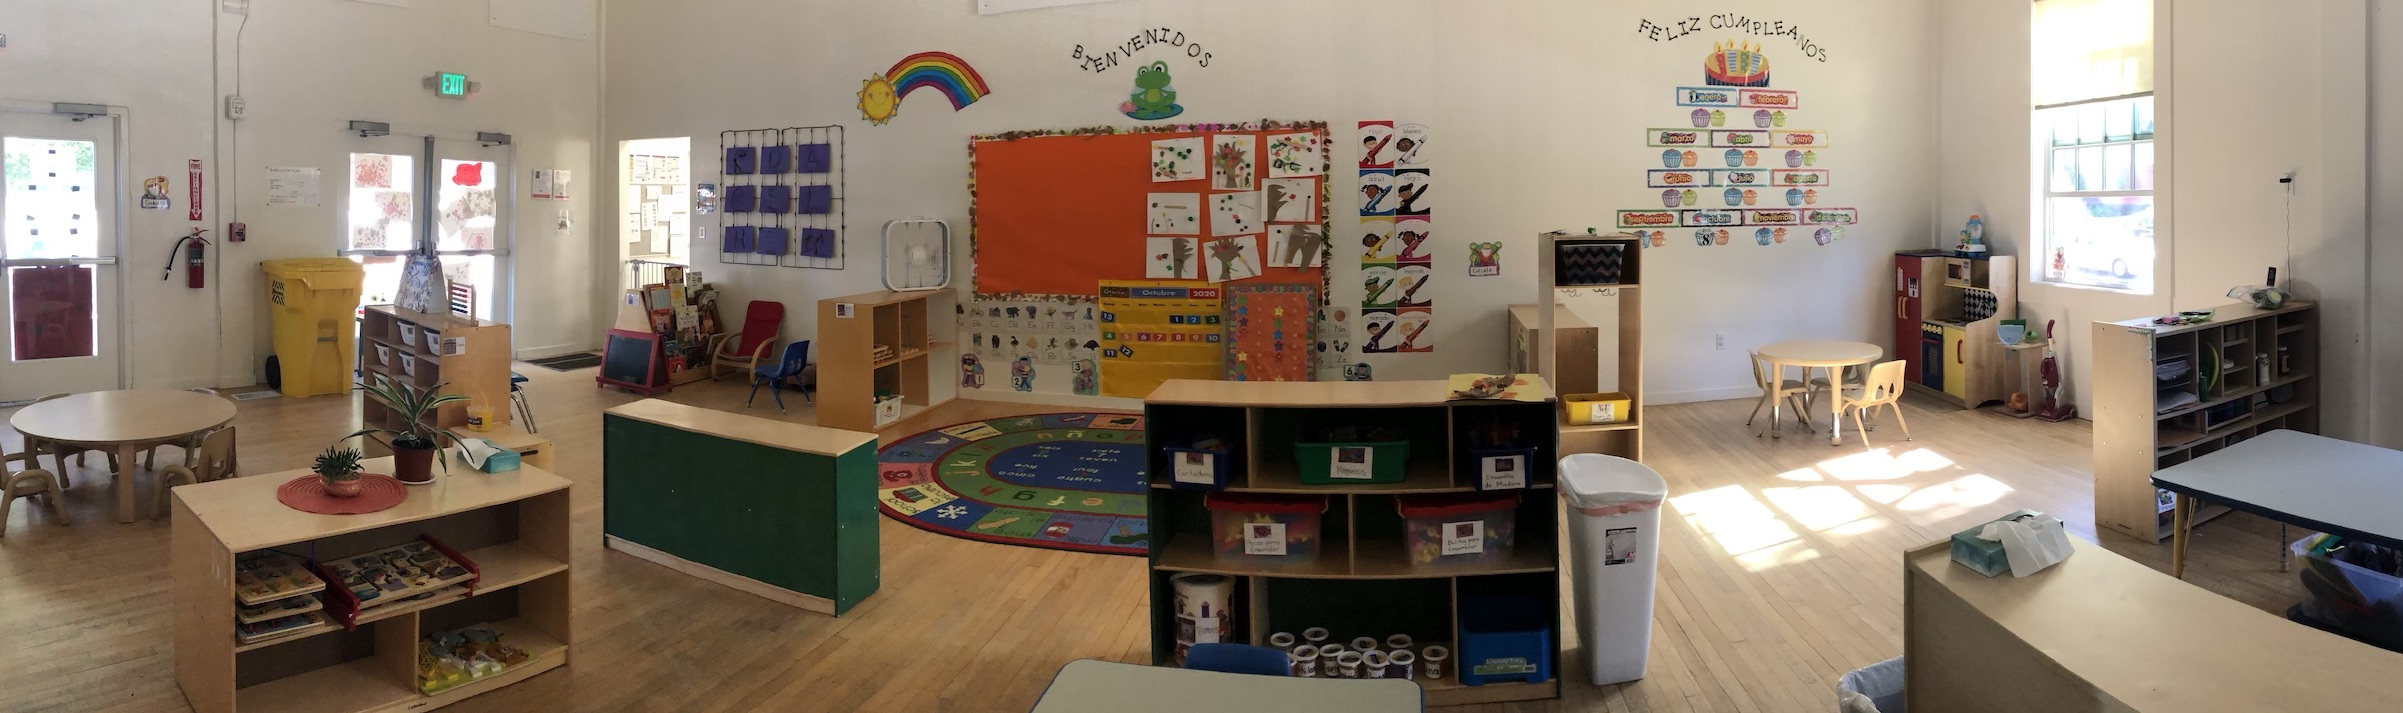 KSS Spanish Immersion Preschool in Oakland - Preschool Classroom